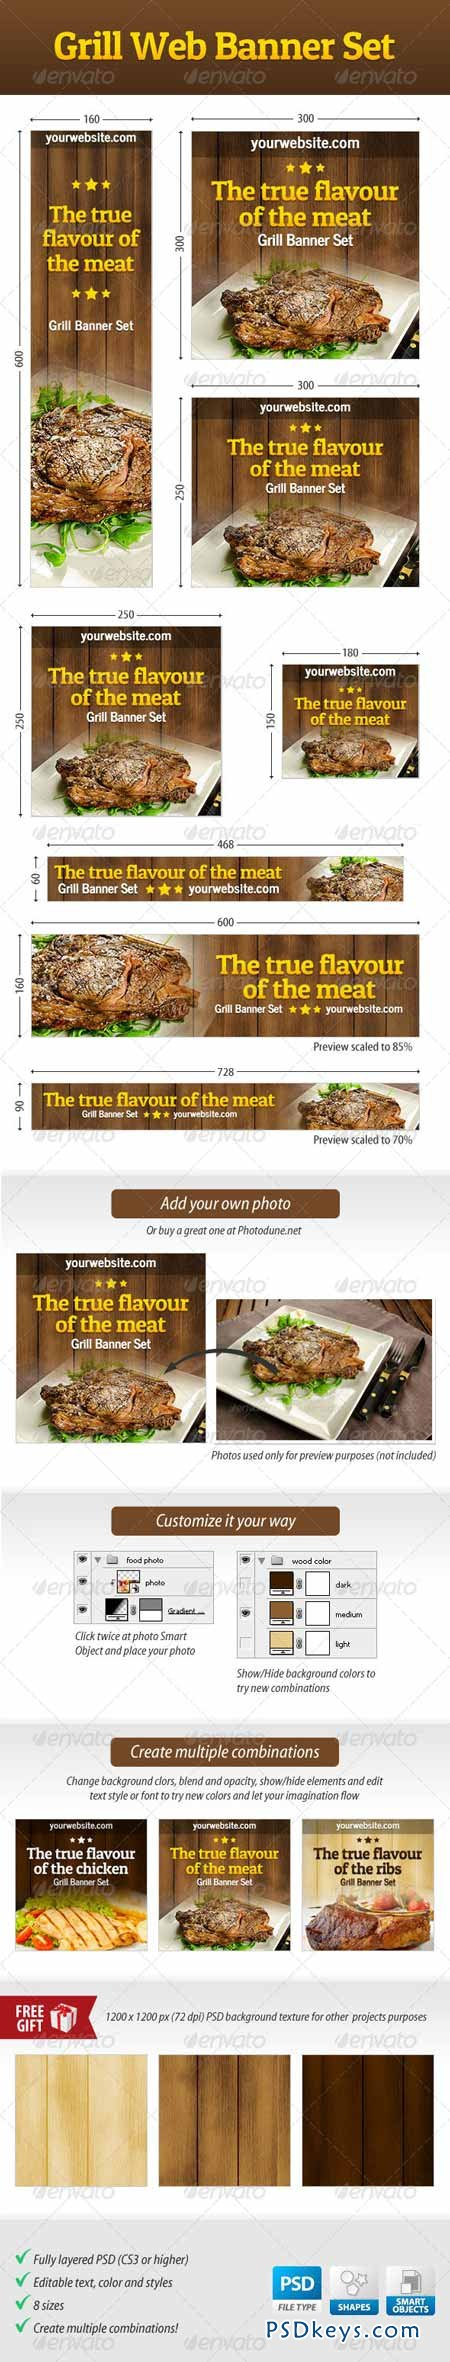 Grill Web Banner Set 4529286